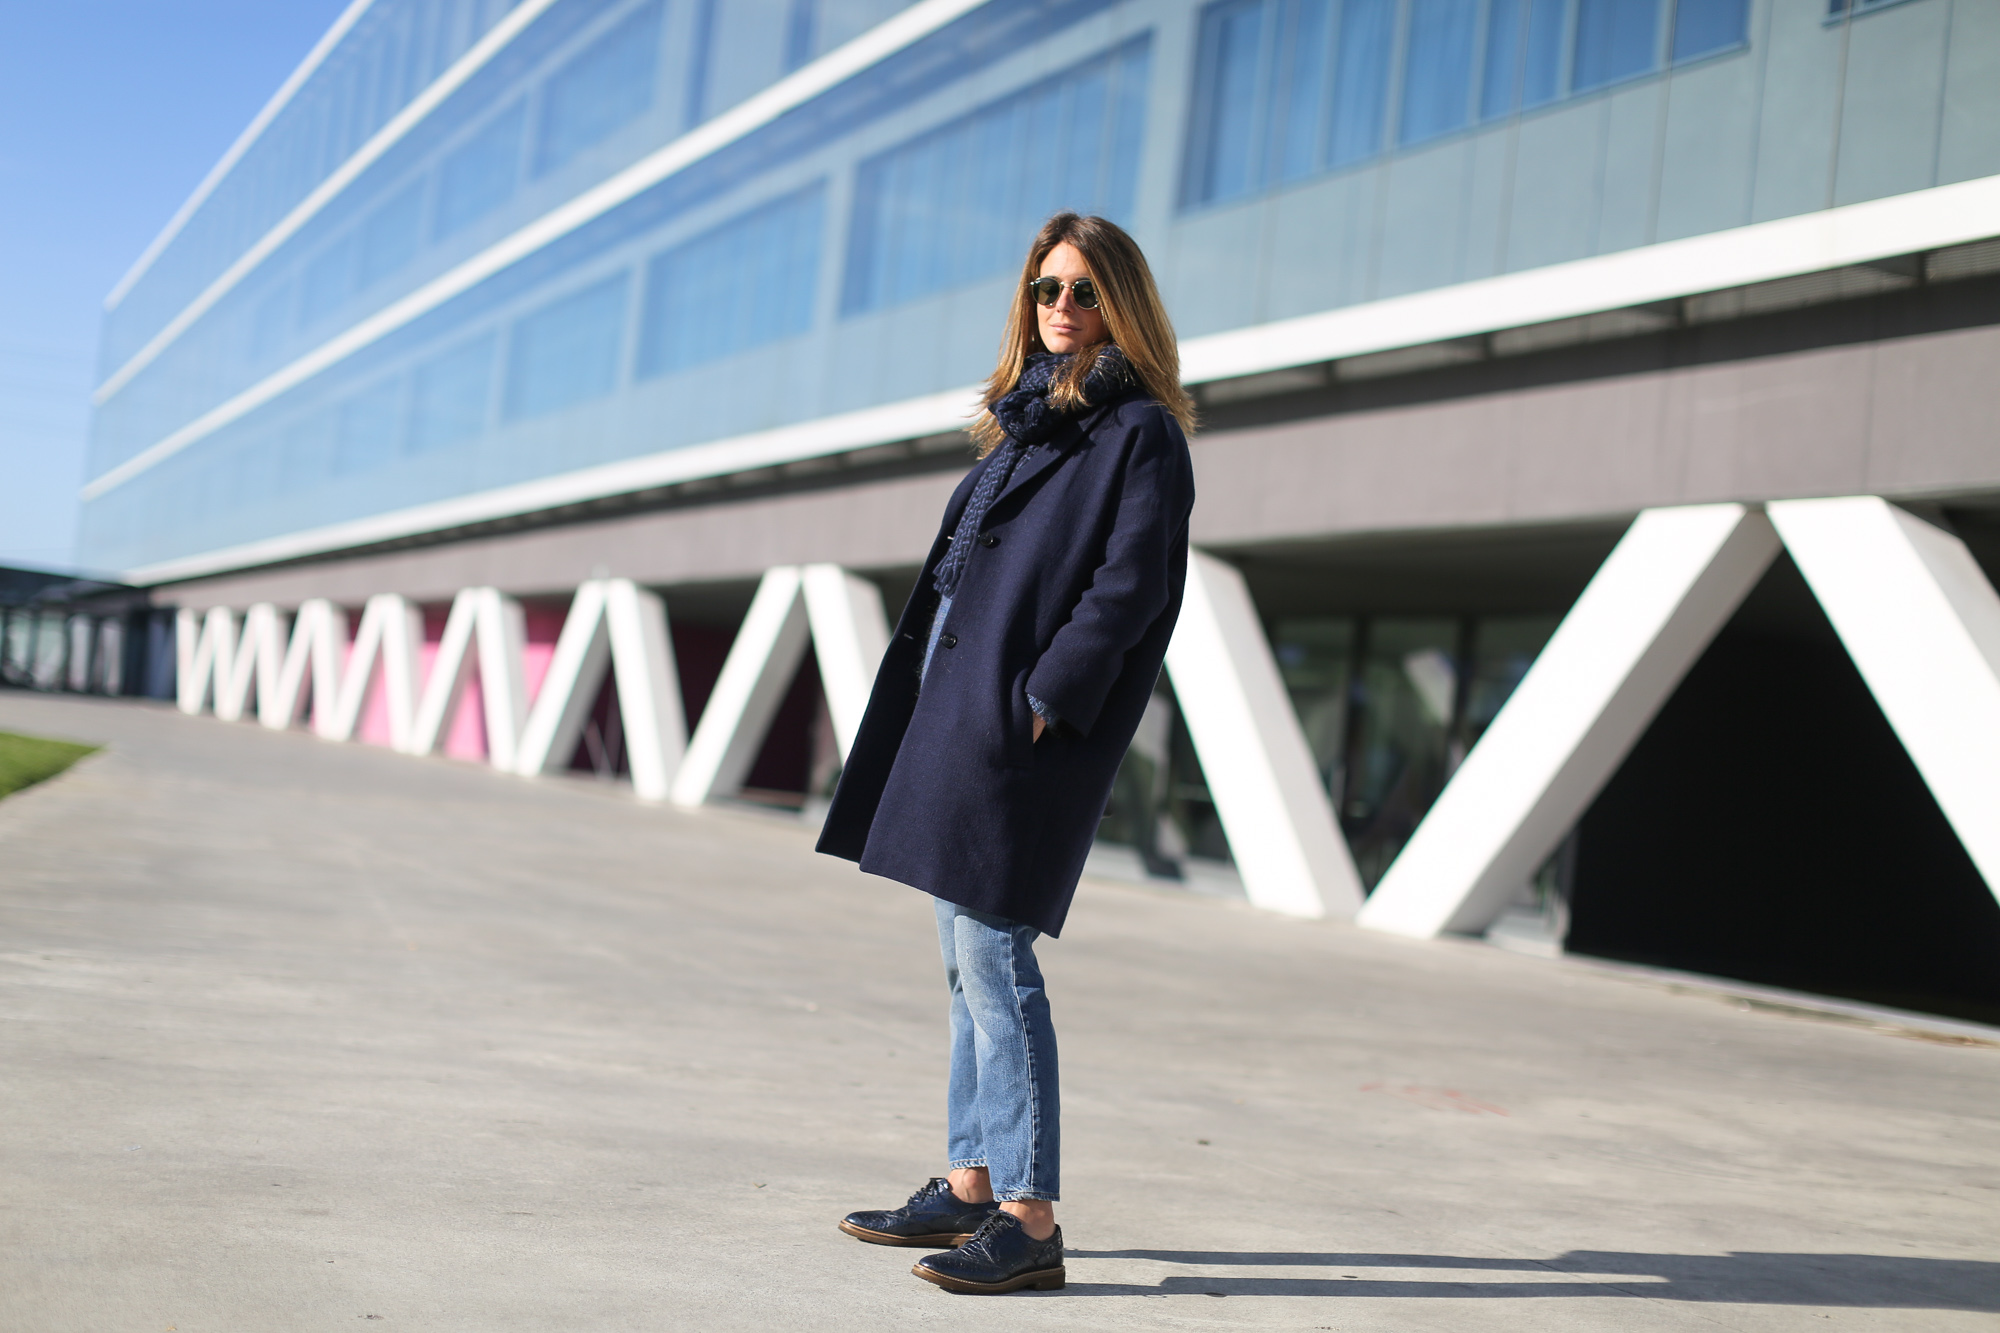 Clochet_streetstyle_masscob_navy_coat_trimmer_bilbao_acne_pop_jeans-2